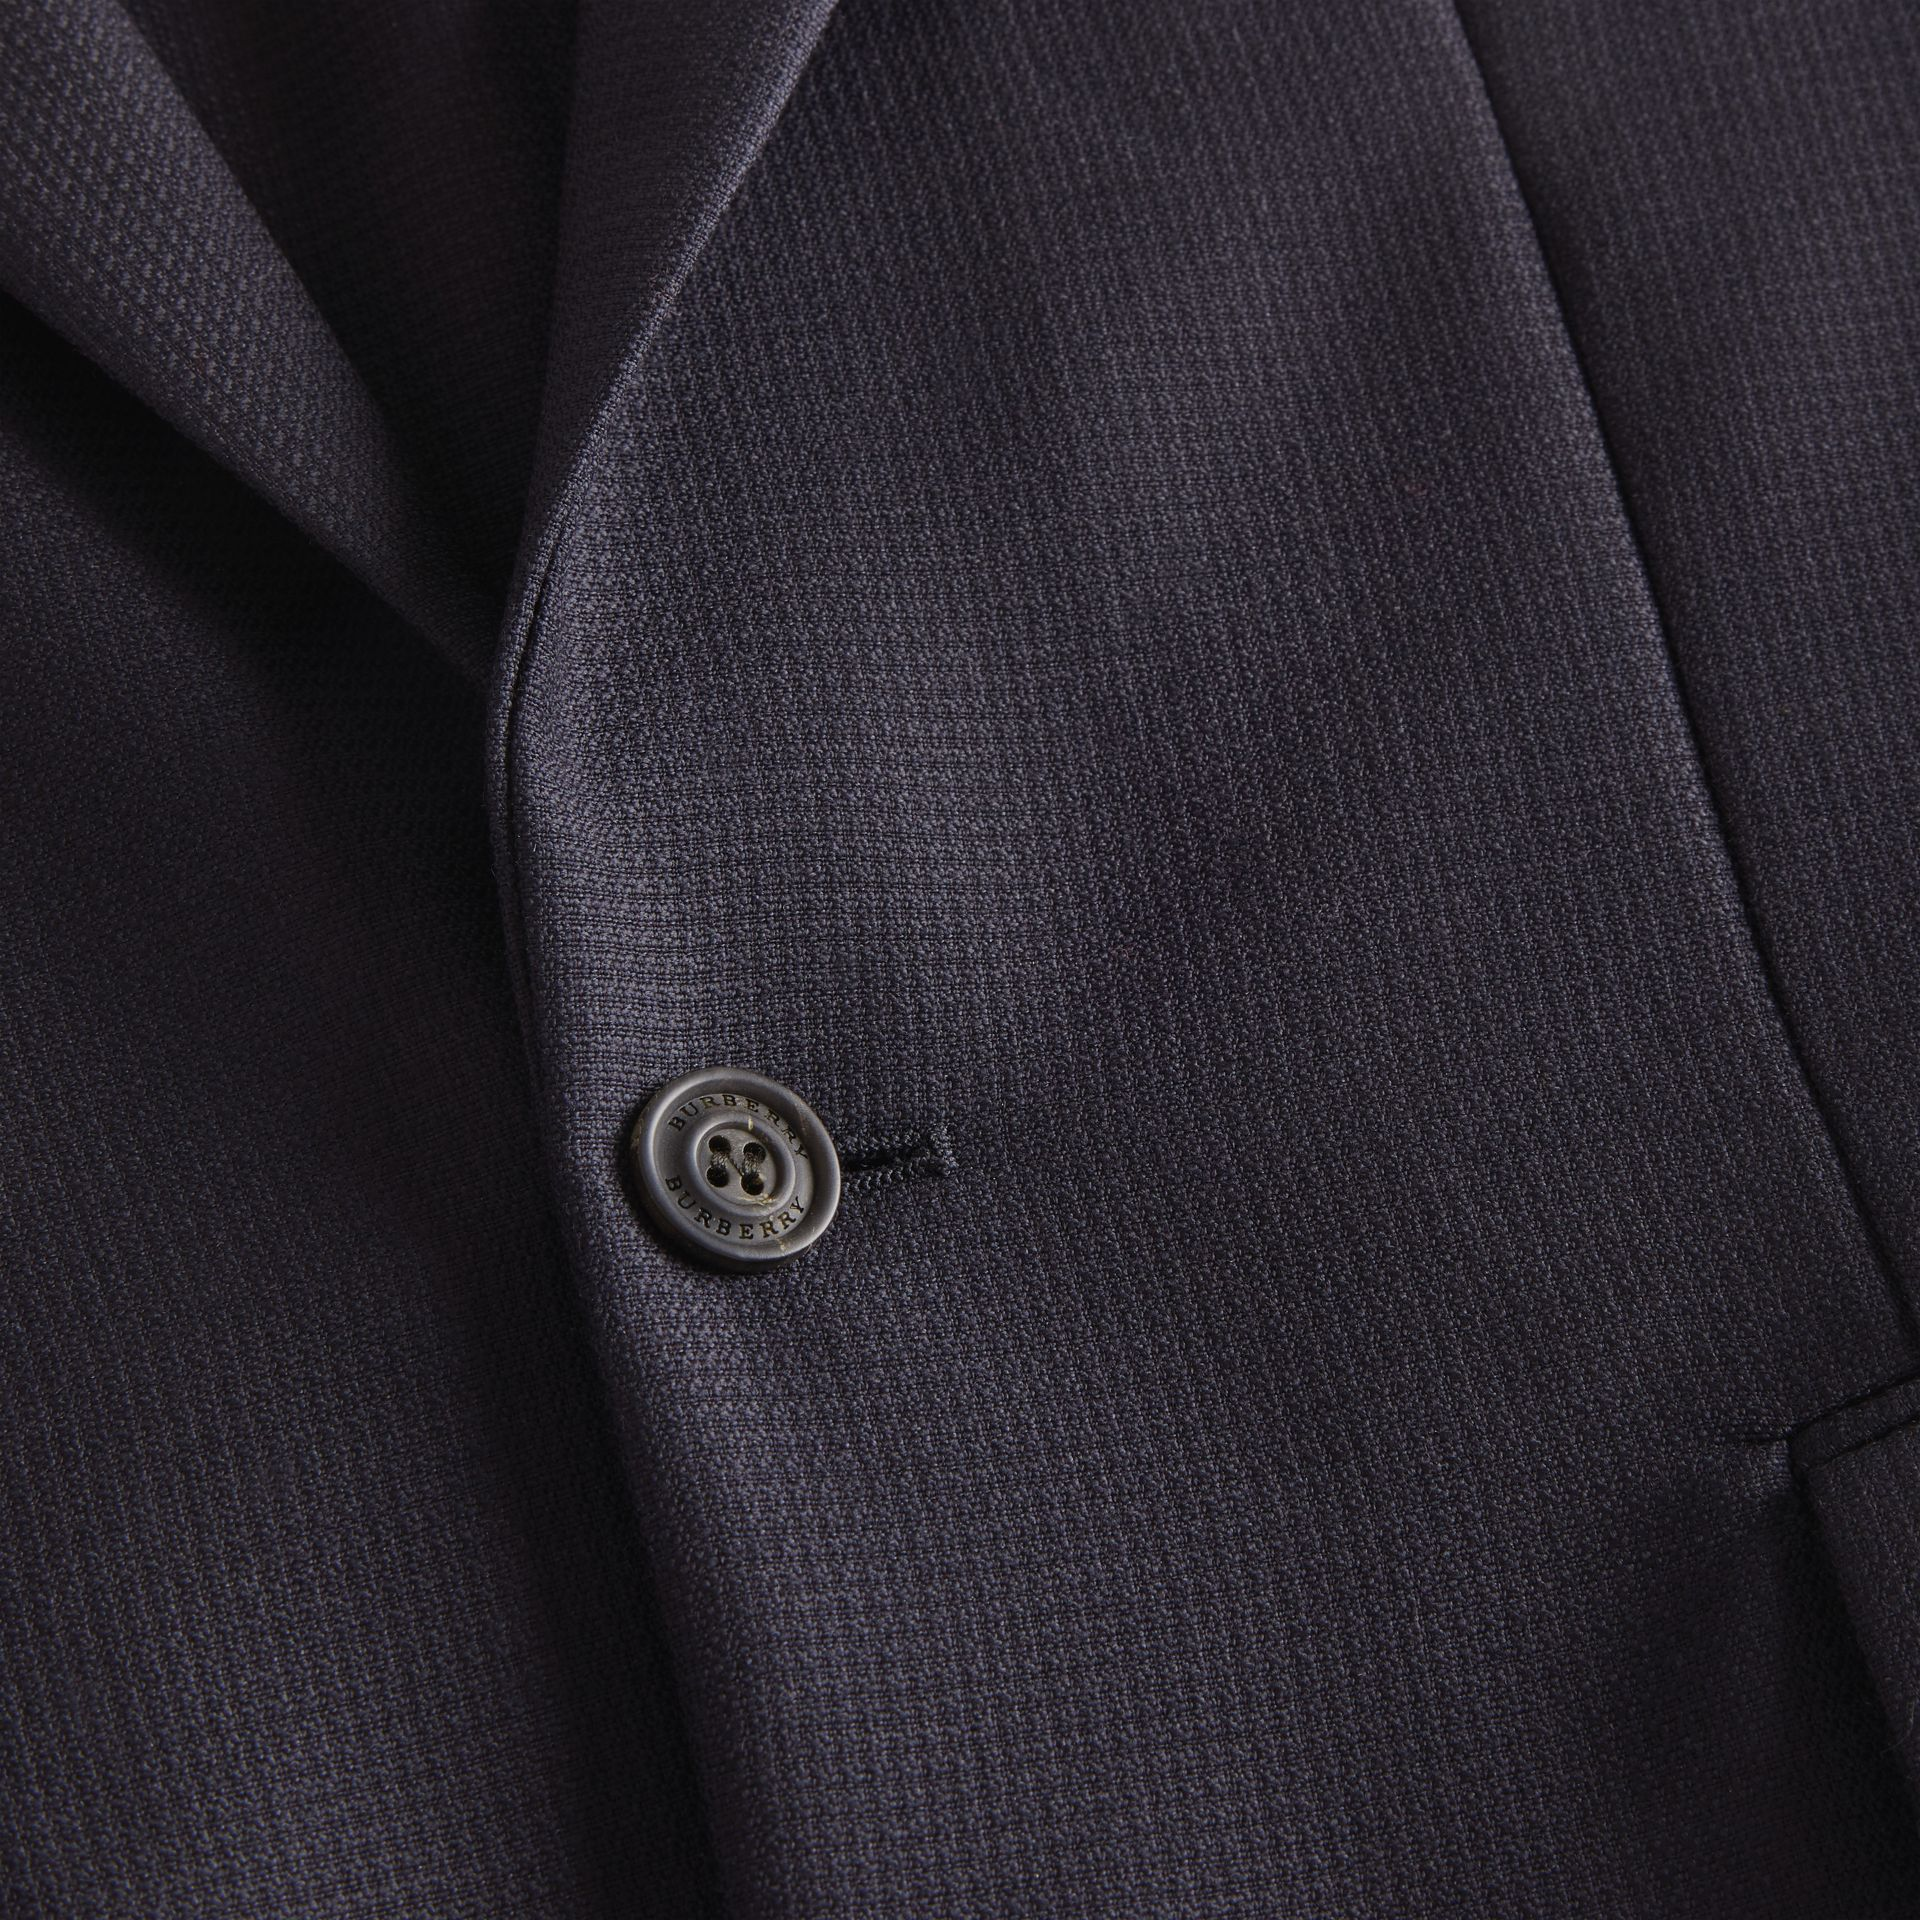 Wool Mohair Tailored Jacket in Midnight - Men | Burberry Canada - gallery image 2